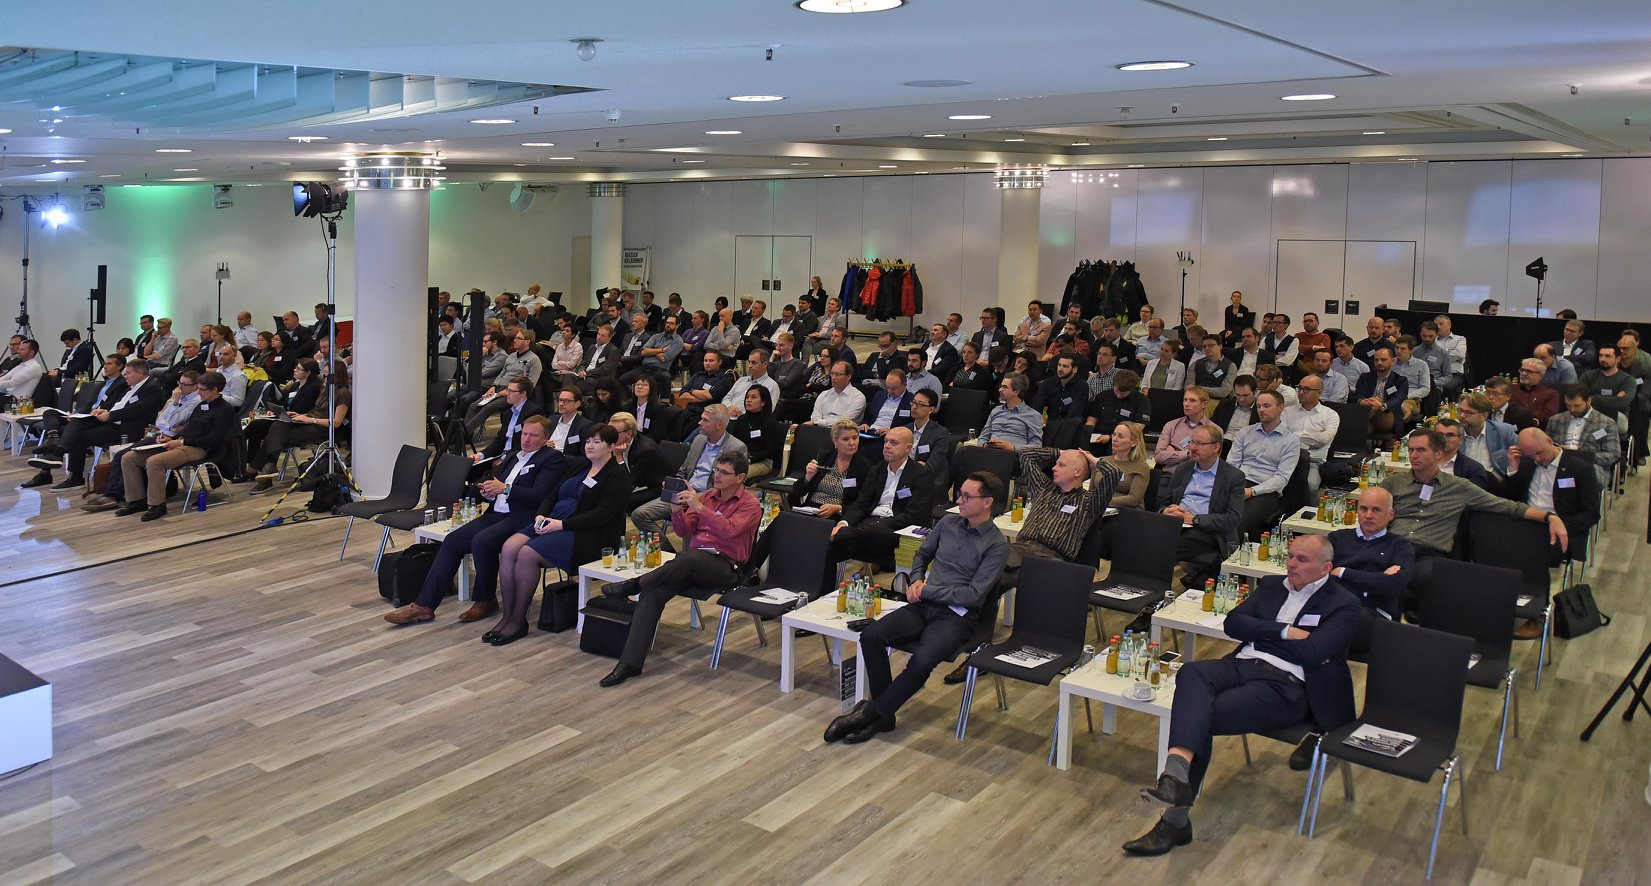 Agile_Automotive_Audience_112018.jpg